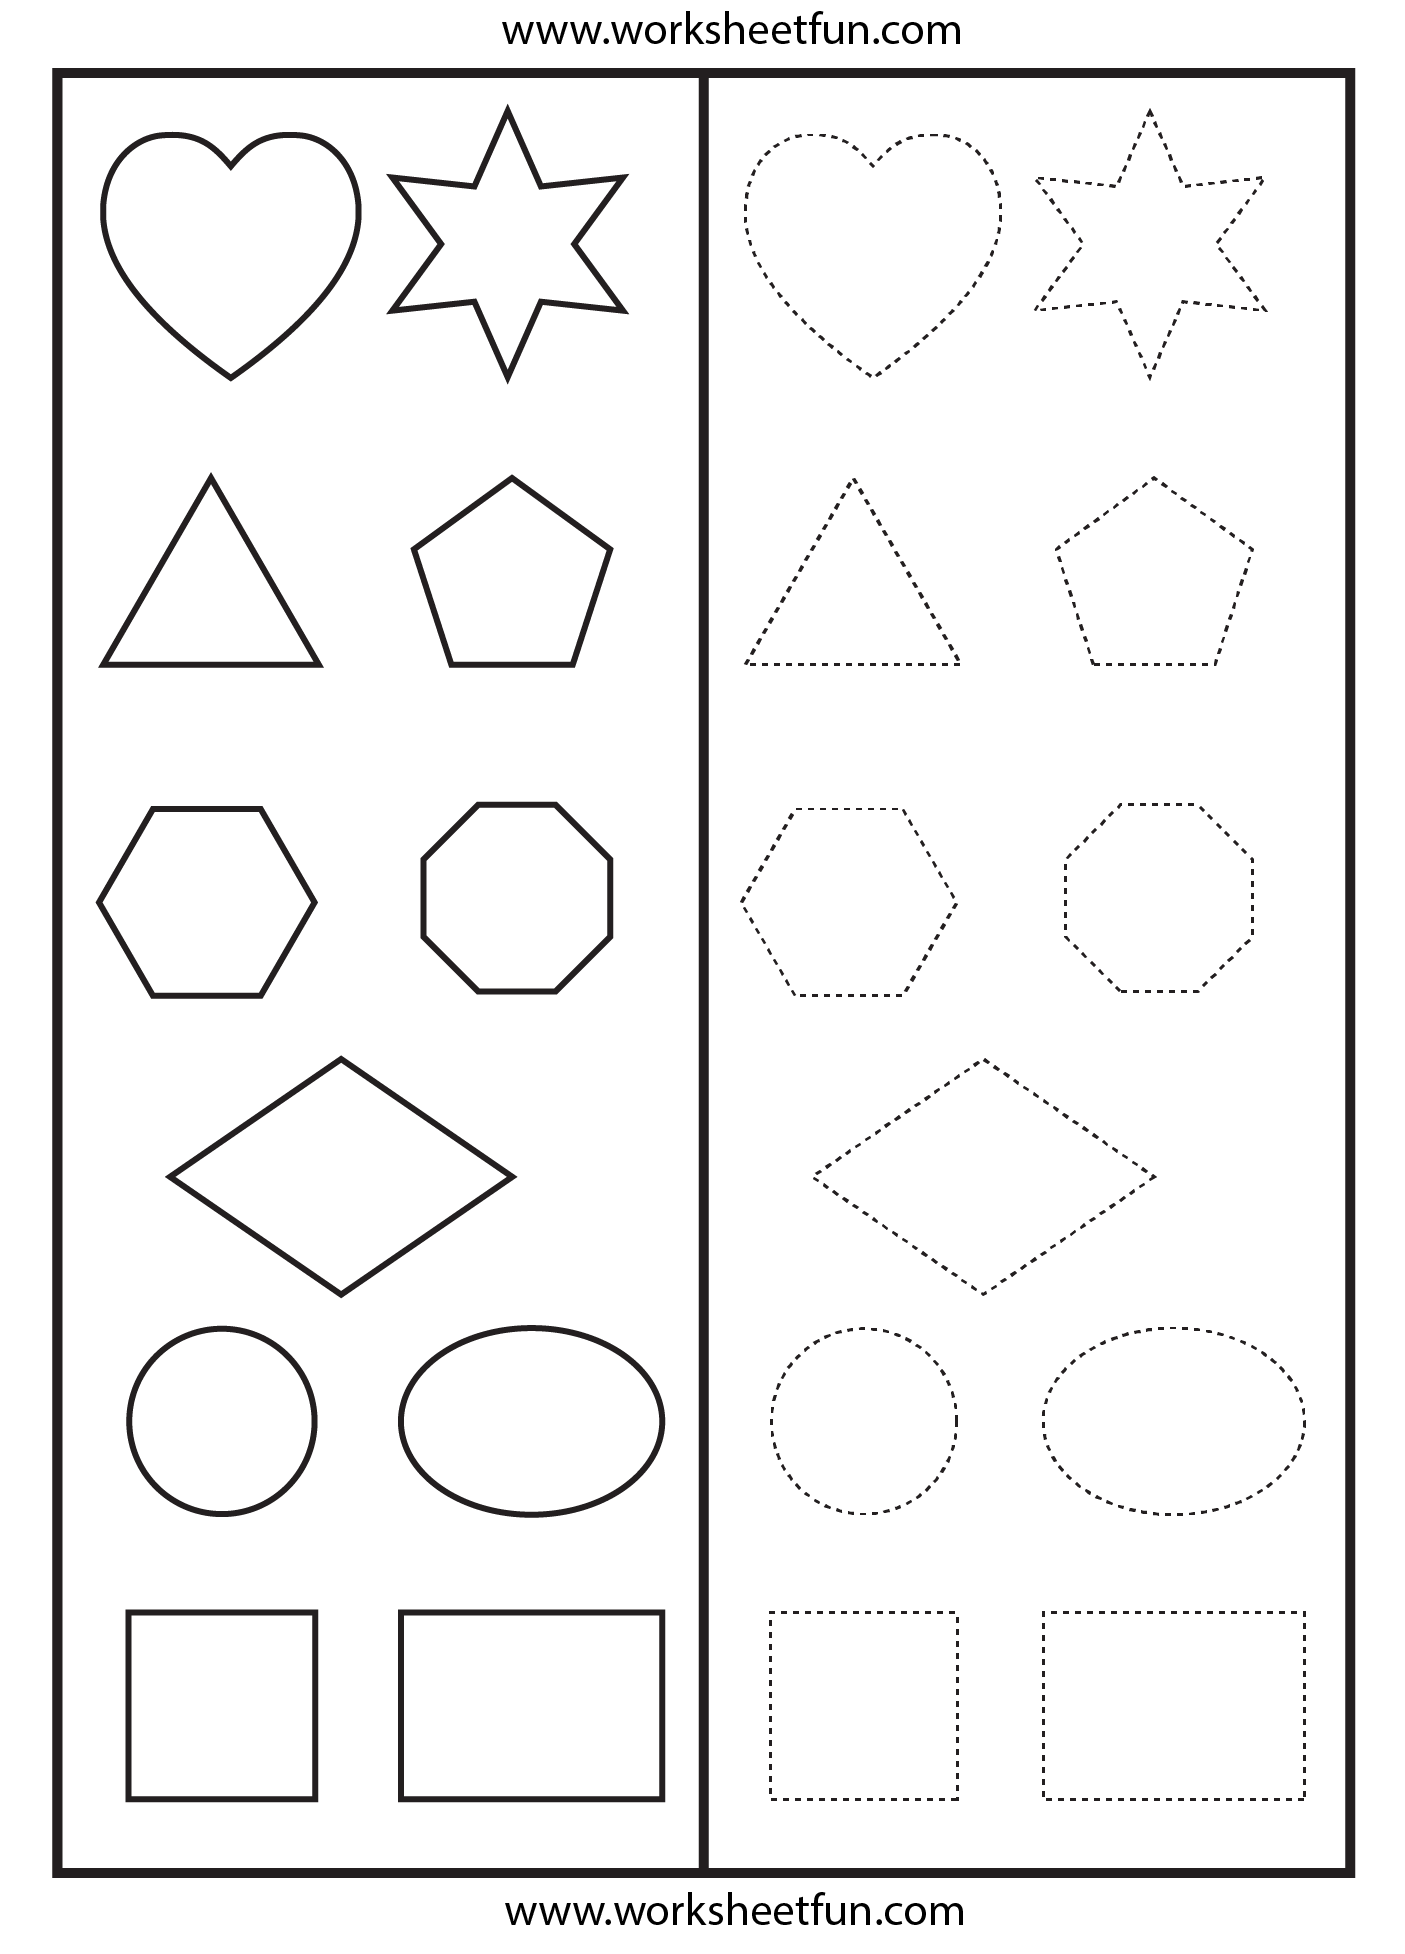 Shapes Tracing Worksheet Free Printable Worksheets Worksheetfun